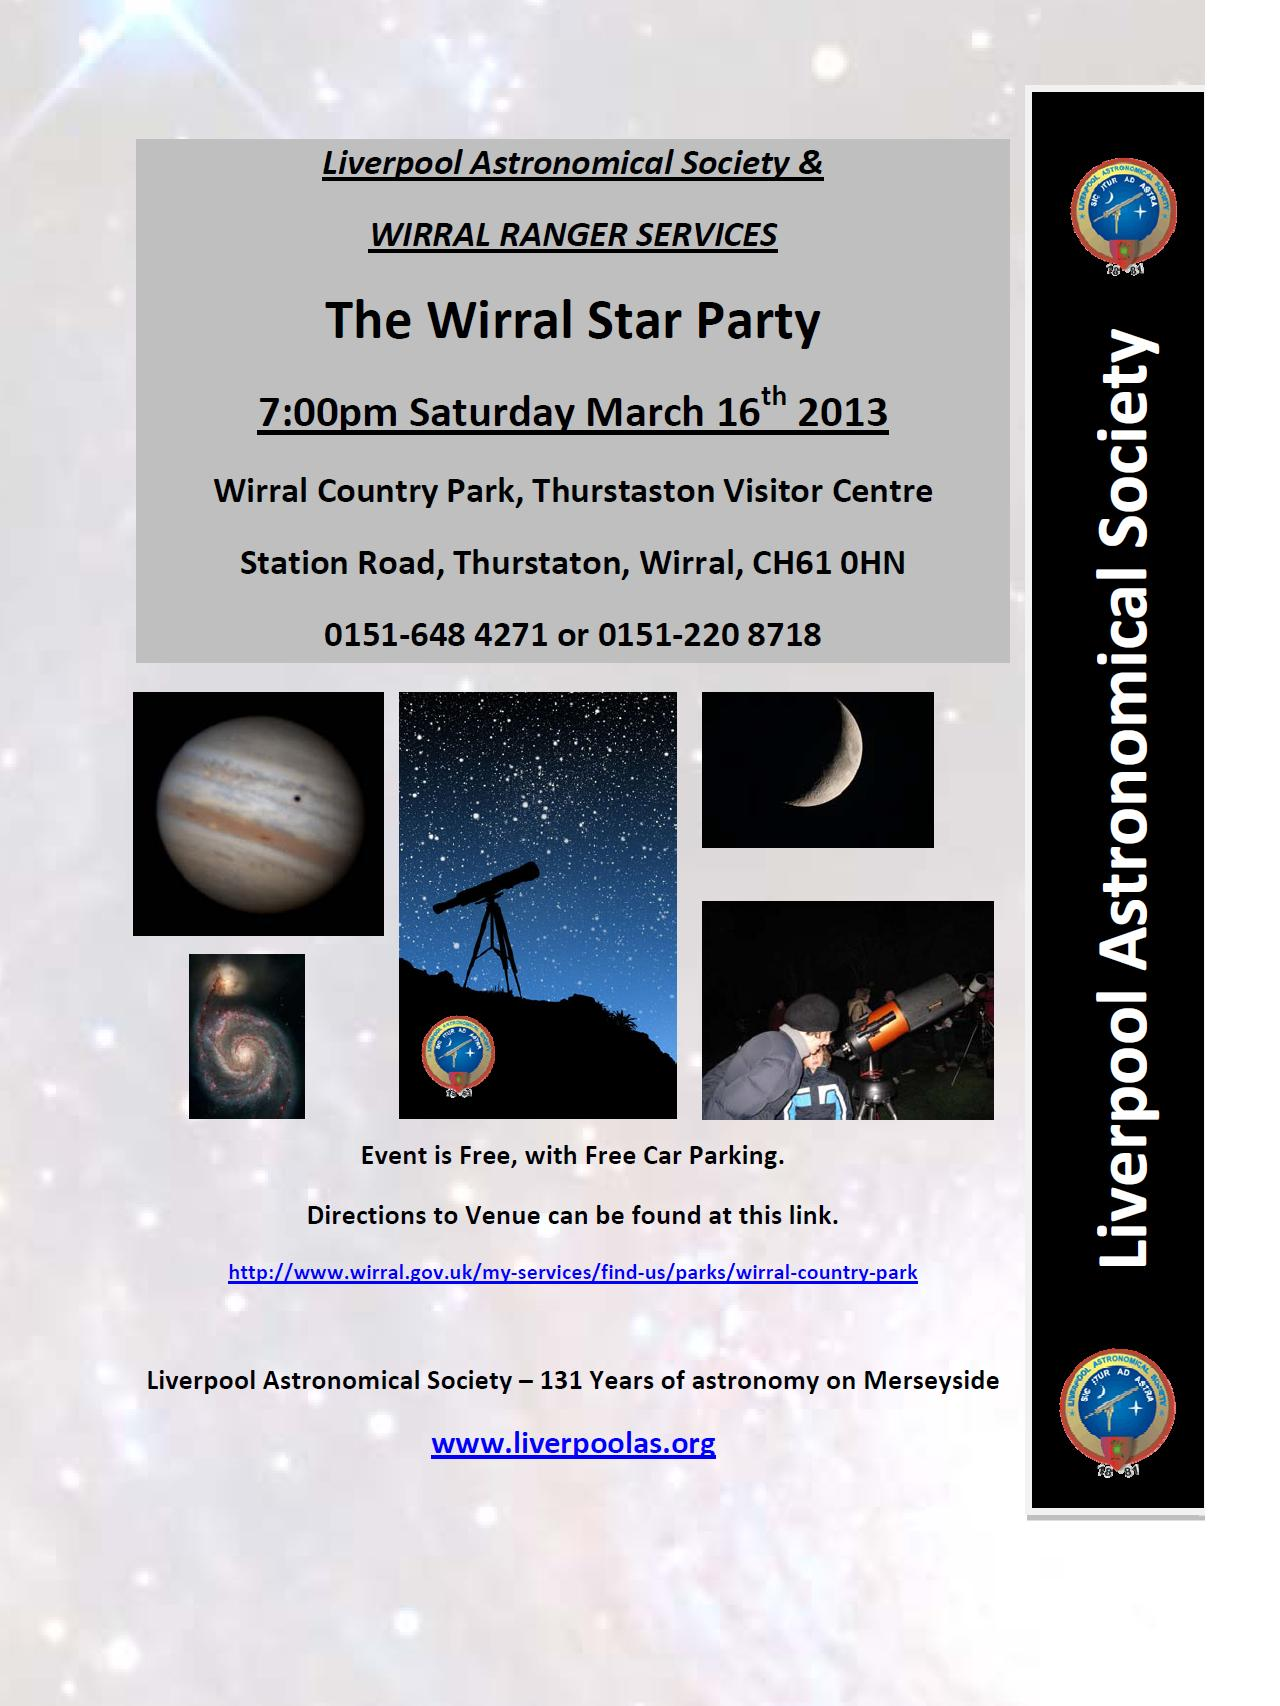 Poster: Star Party at Wirral Country Park, Saturday 16th March 2013